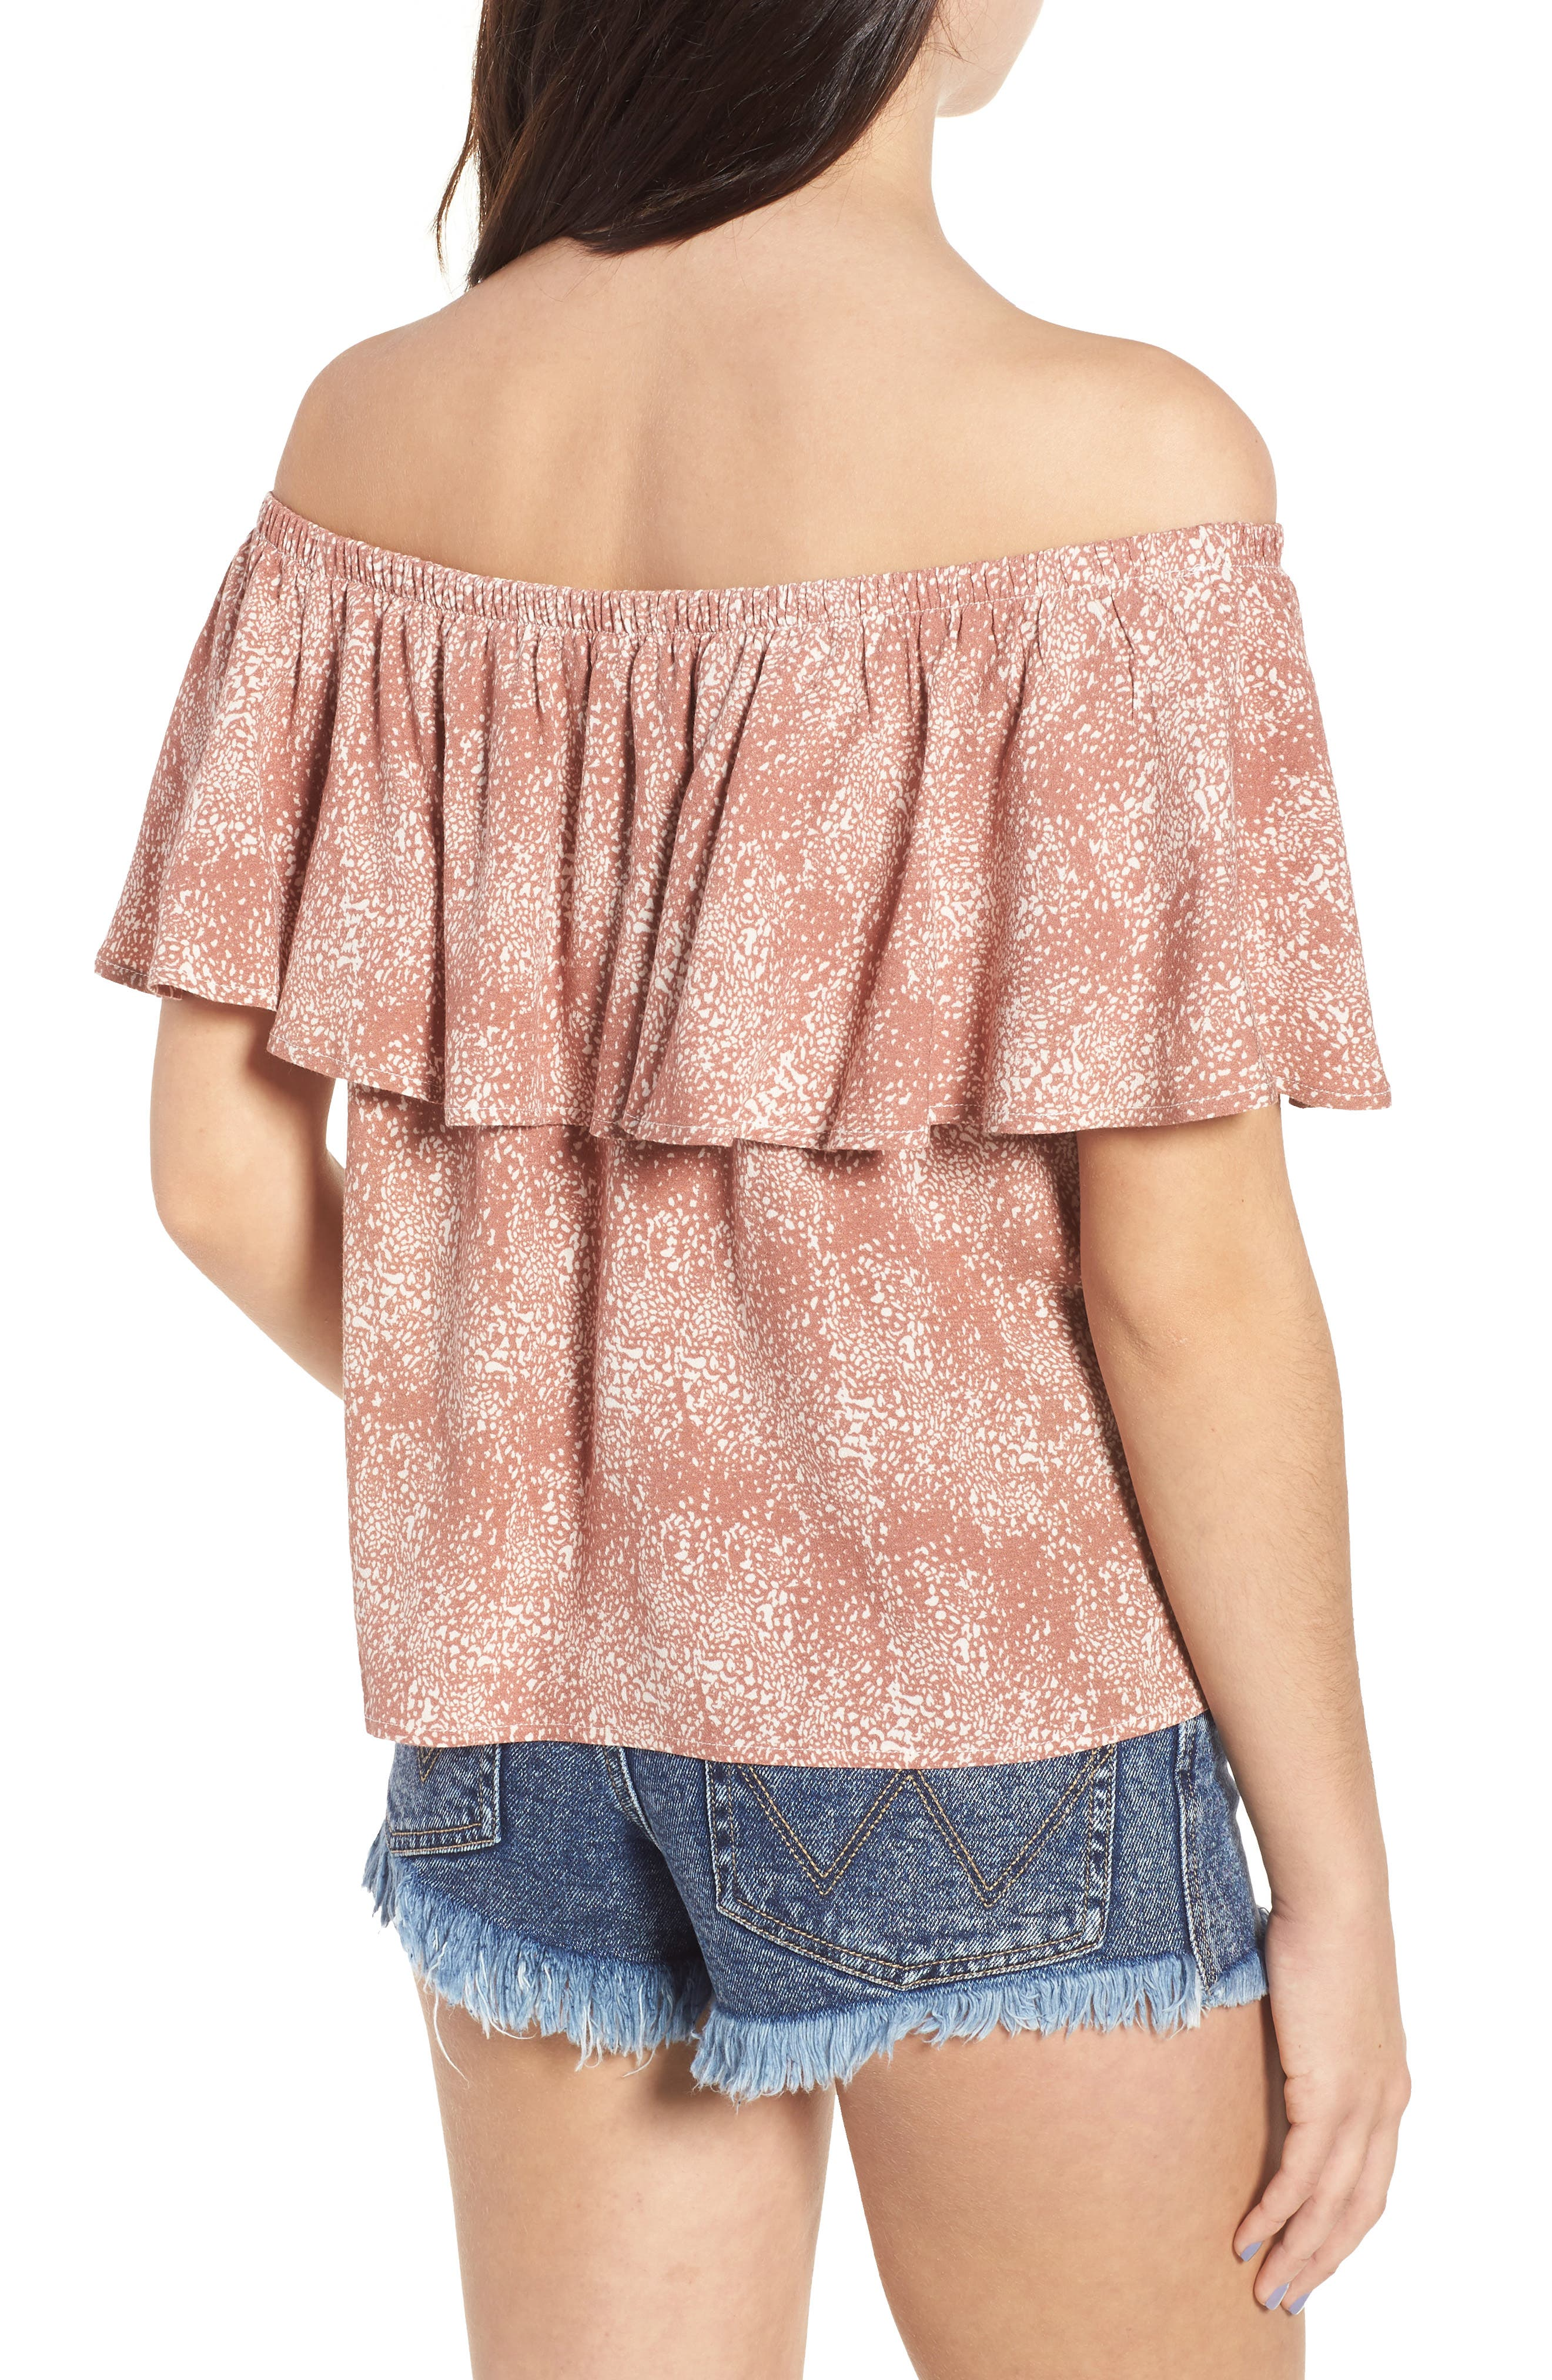 Mary Off the Shoulder Top,                             Alternate thumbnail 4, color,